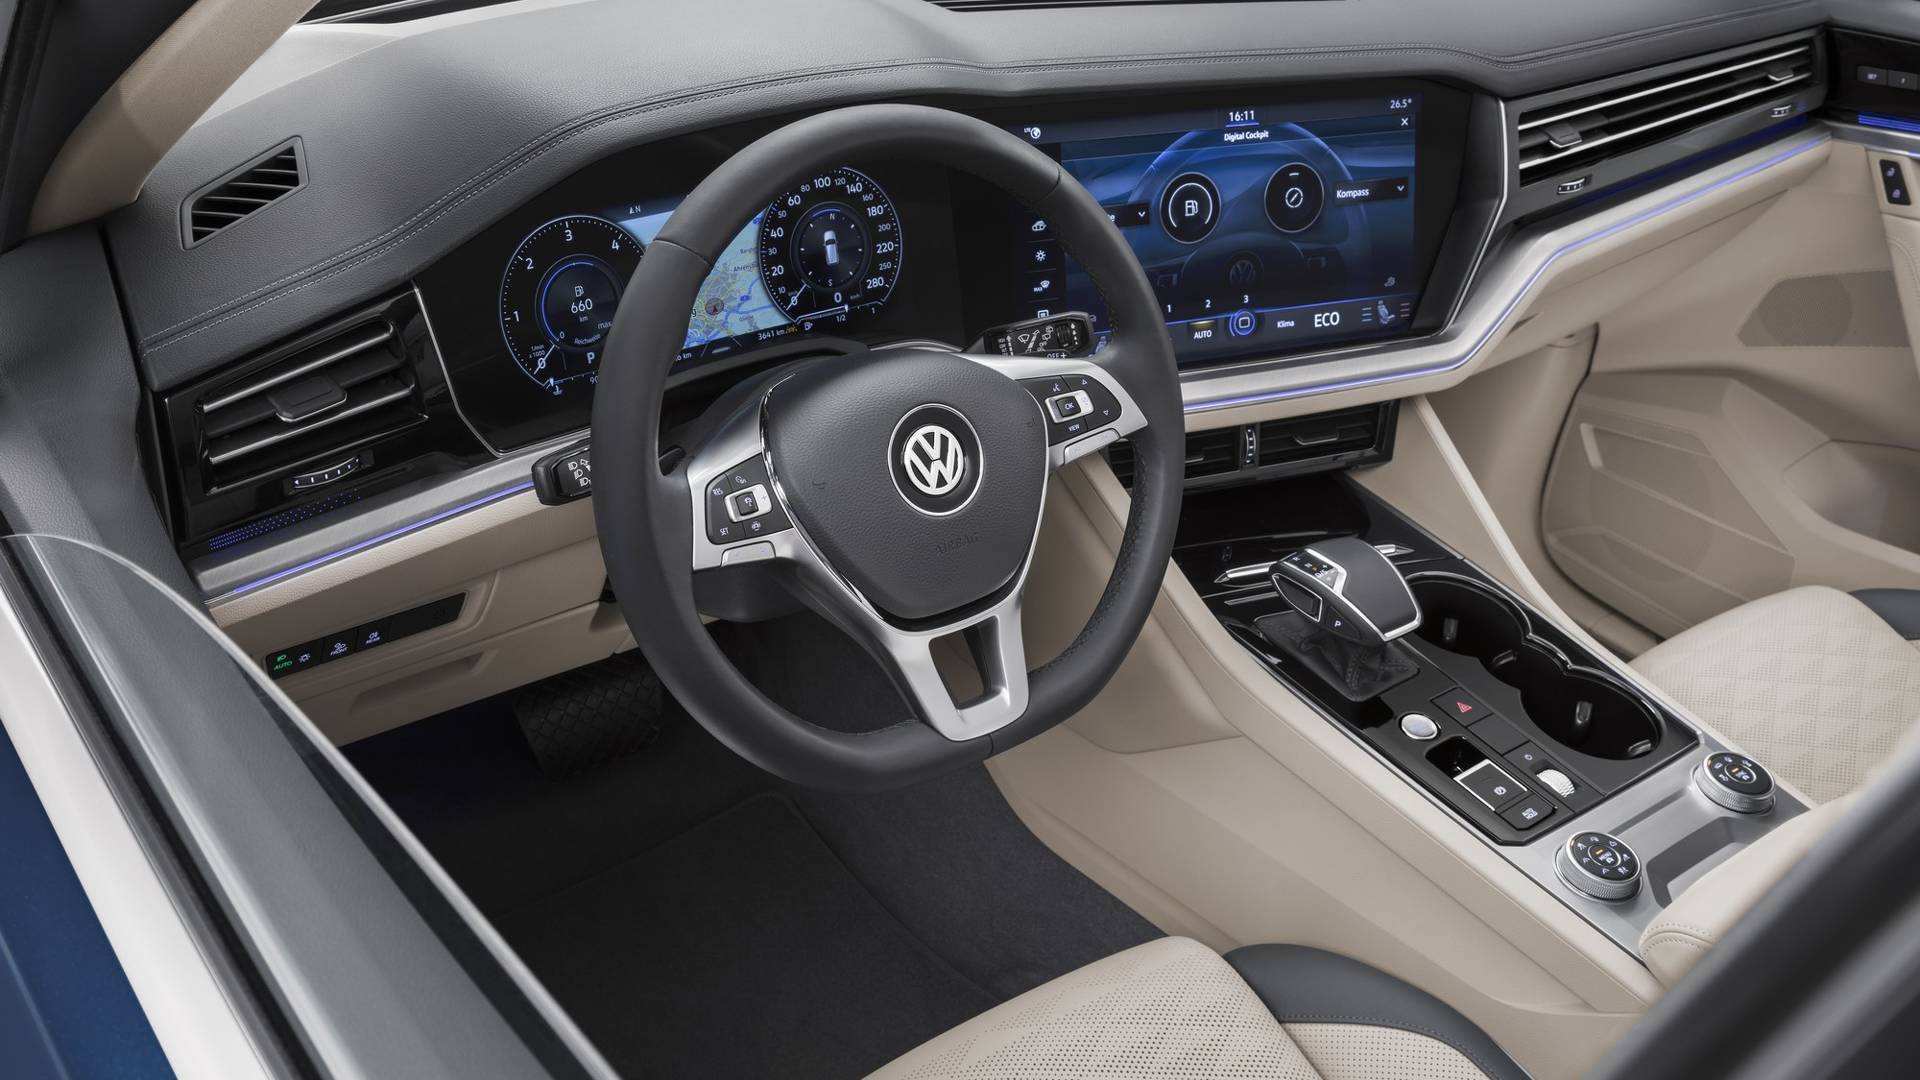 96 Best Vw Touareg 2019 Interior Research New